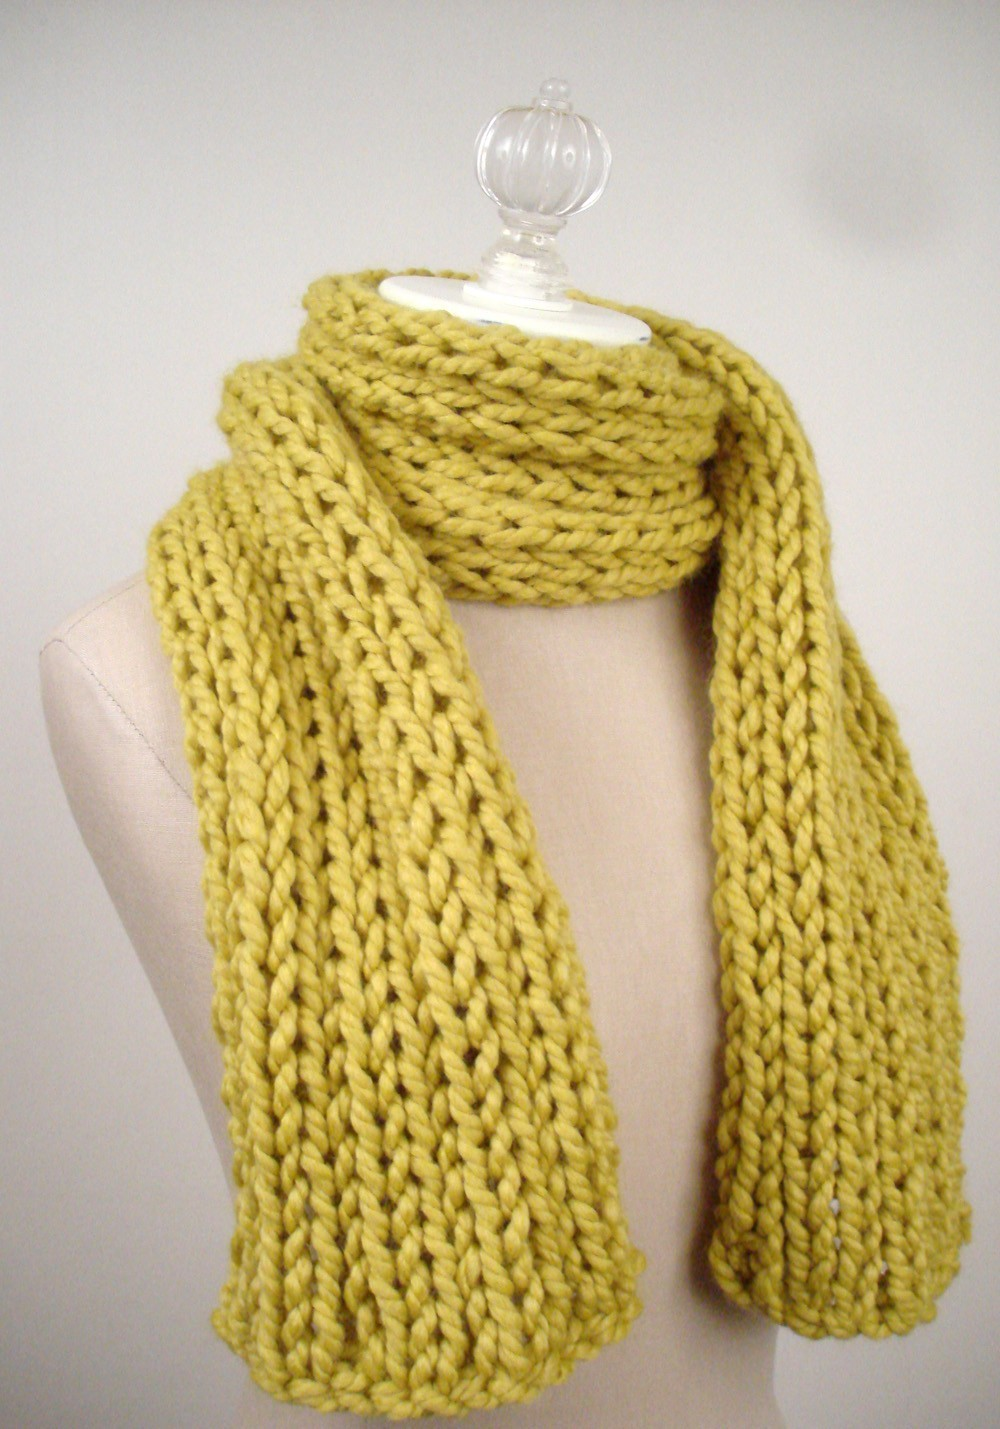 Beginner Knitting Patterns Scarves : Easy scarf knitting patterns for beginners - Knitting for Beginners: 6 Easy F...